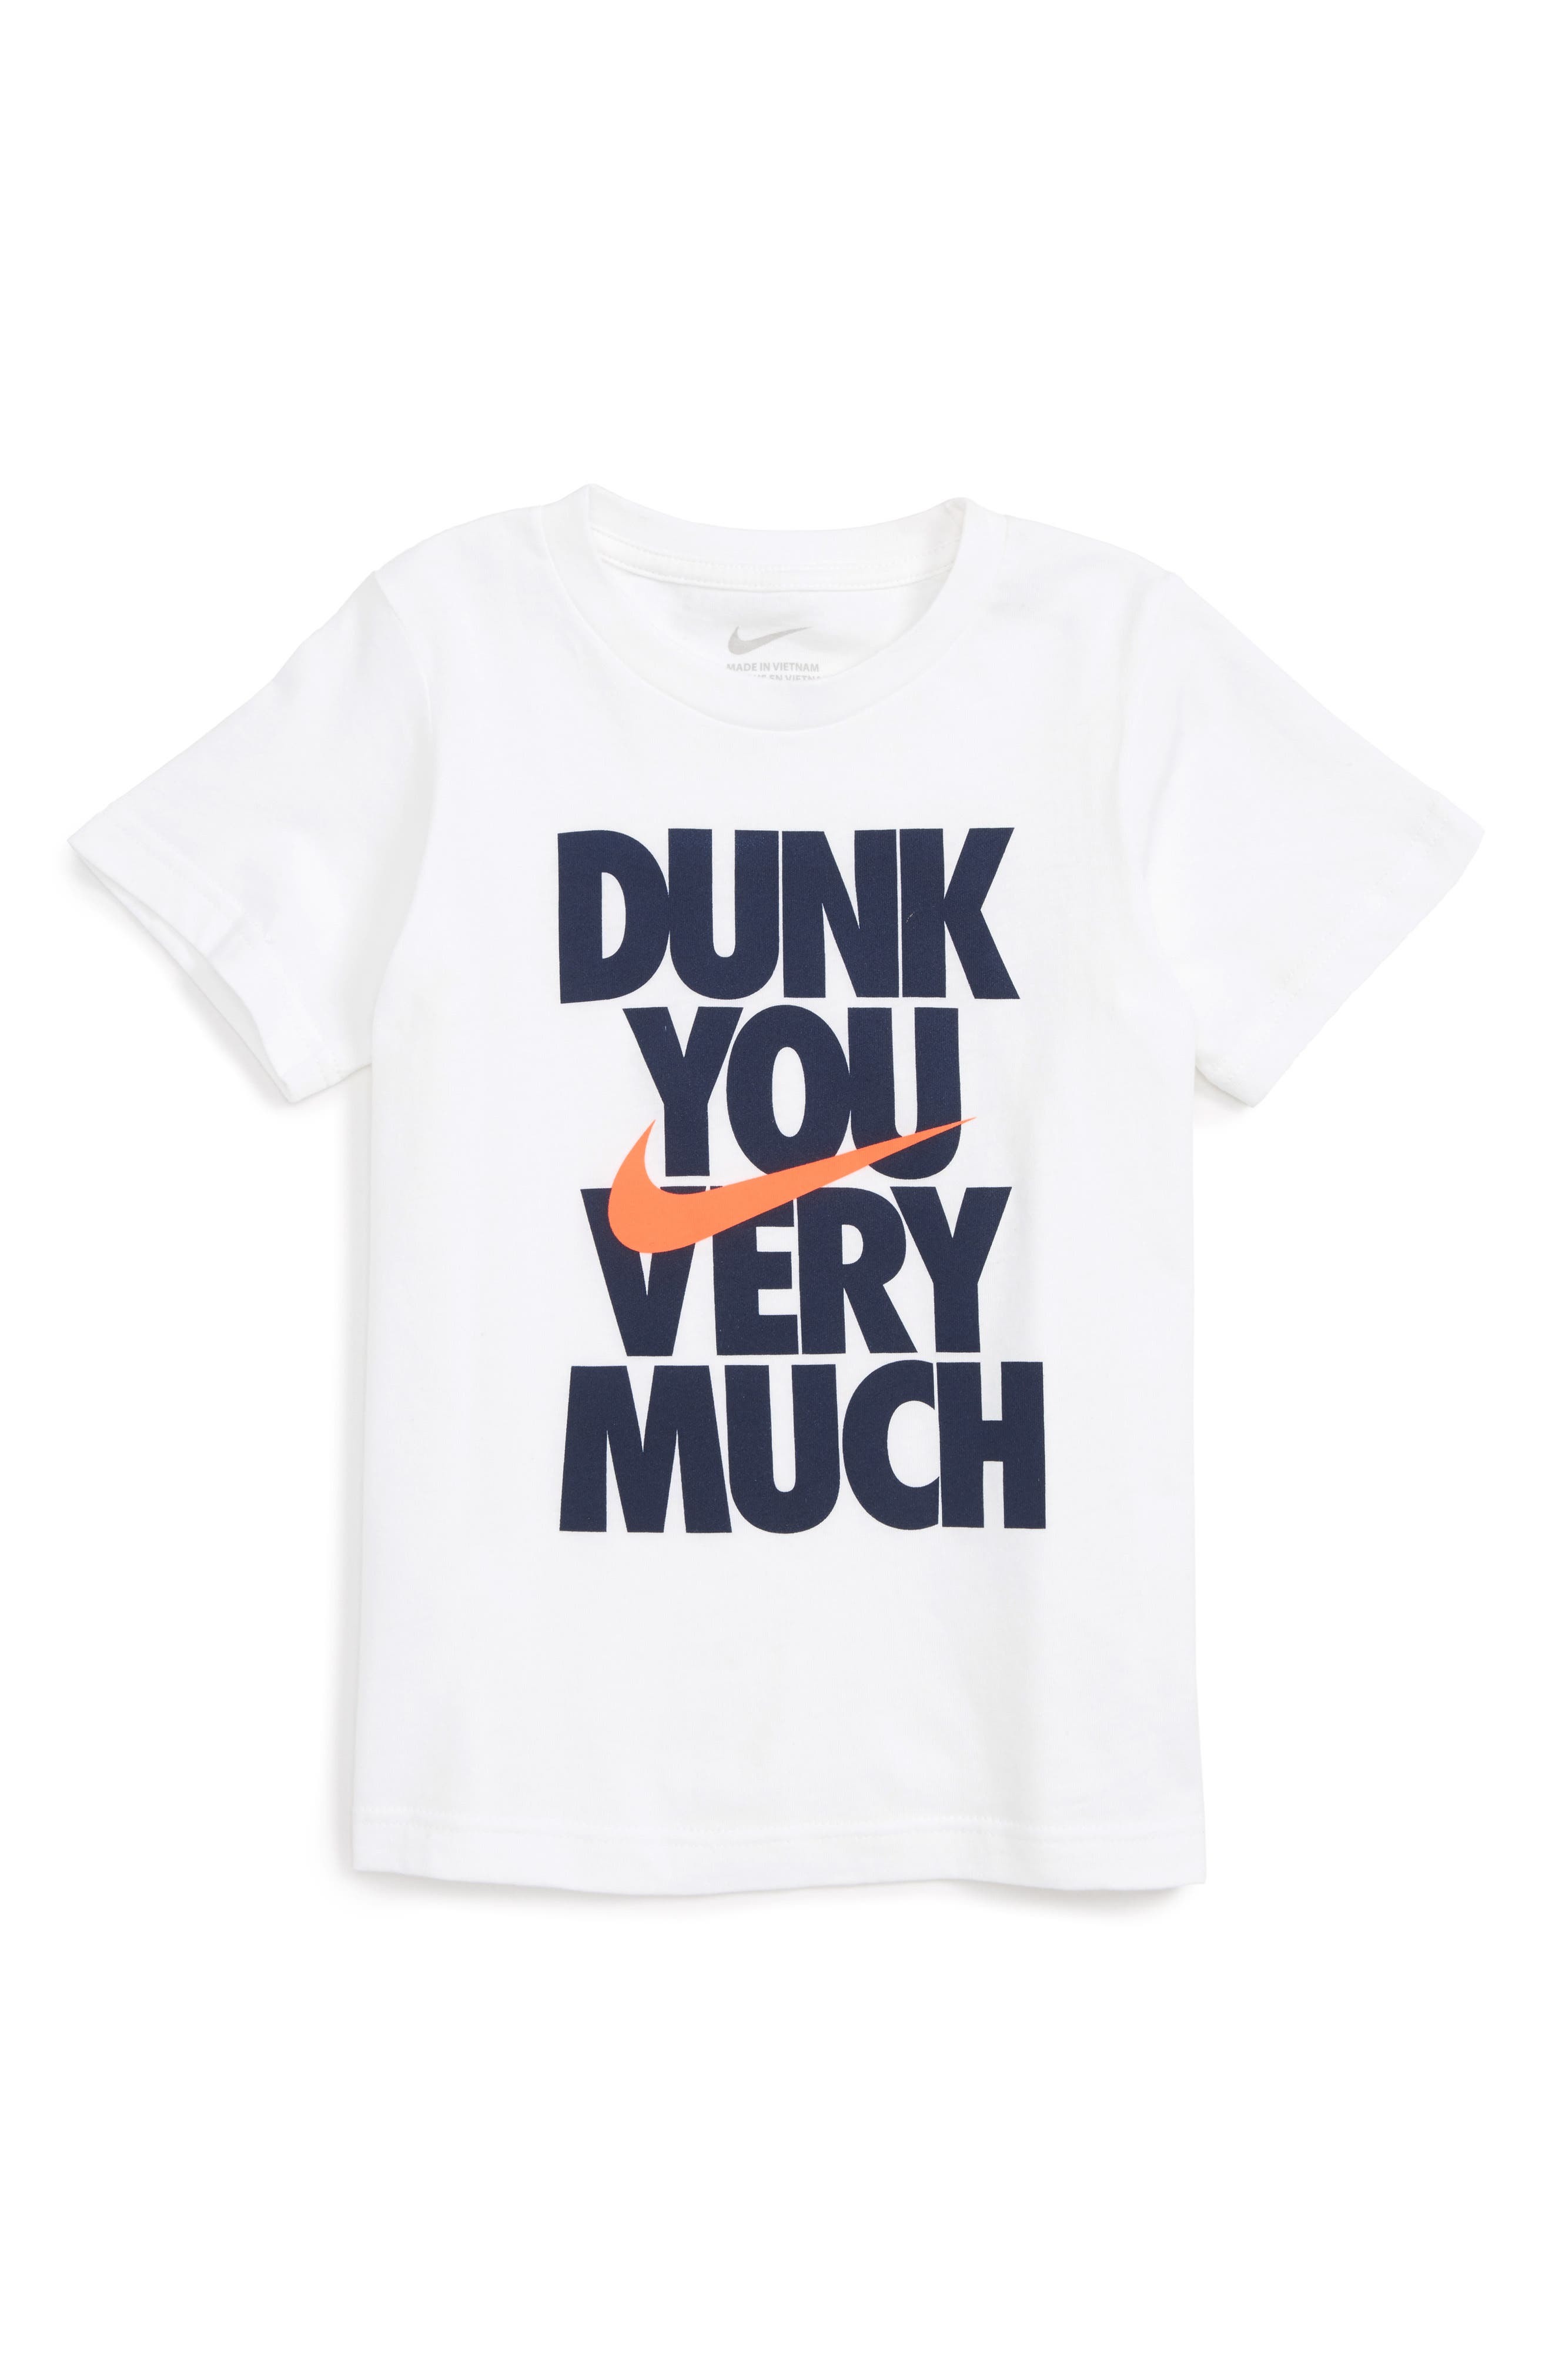 Nike Dunk You Very Much Graphic T-Shirt (Toddler Boys & Little Boys)